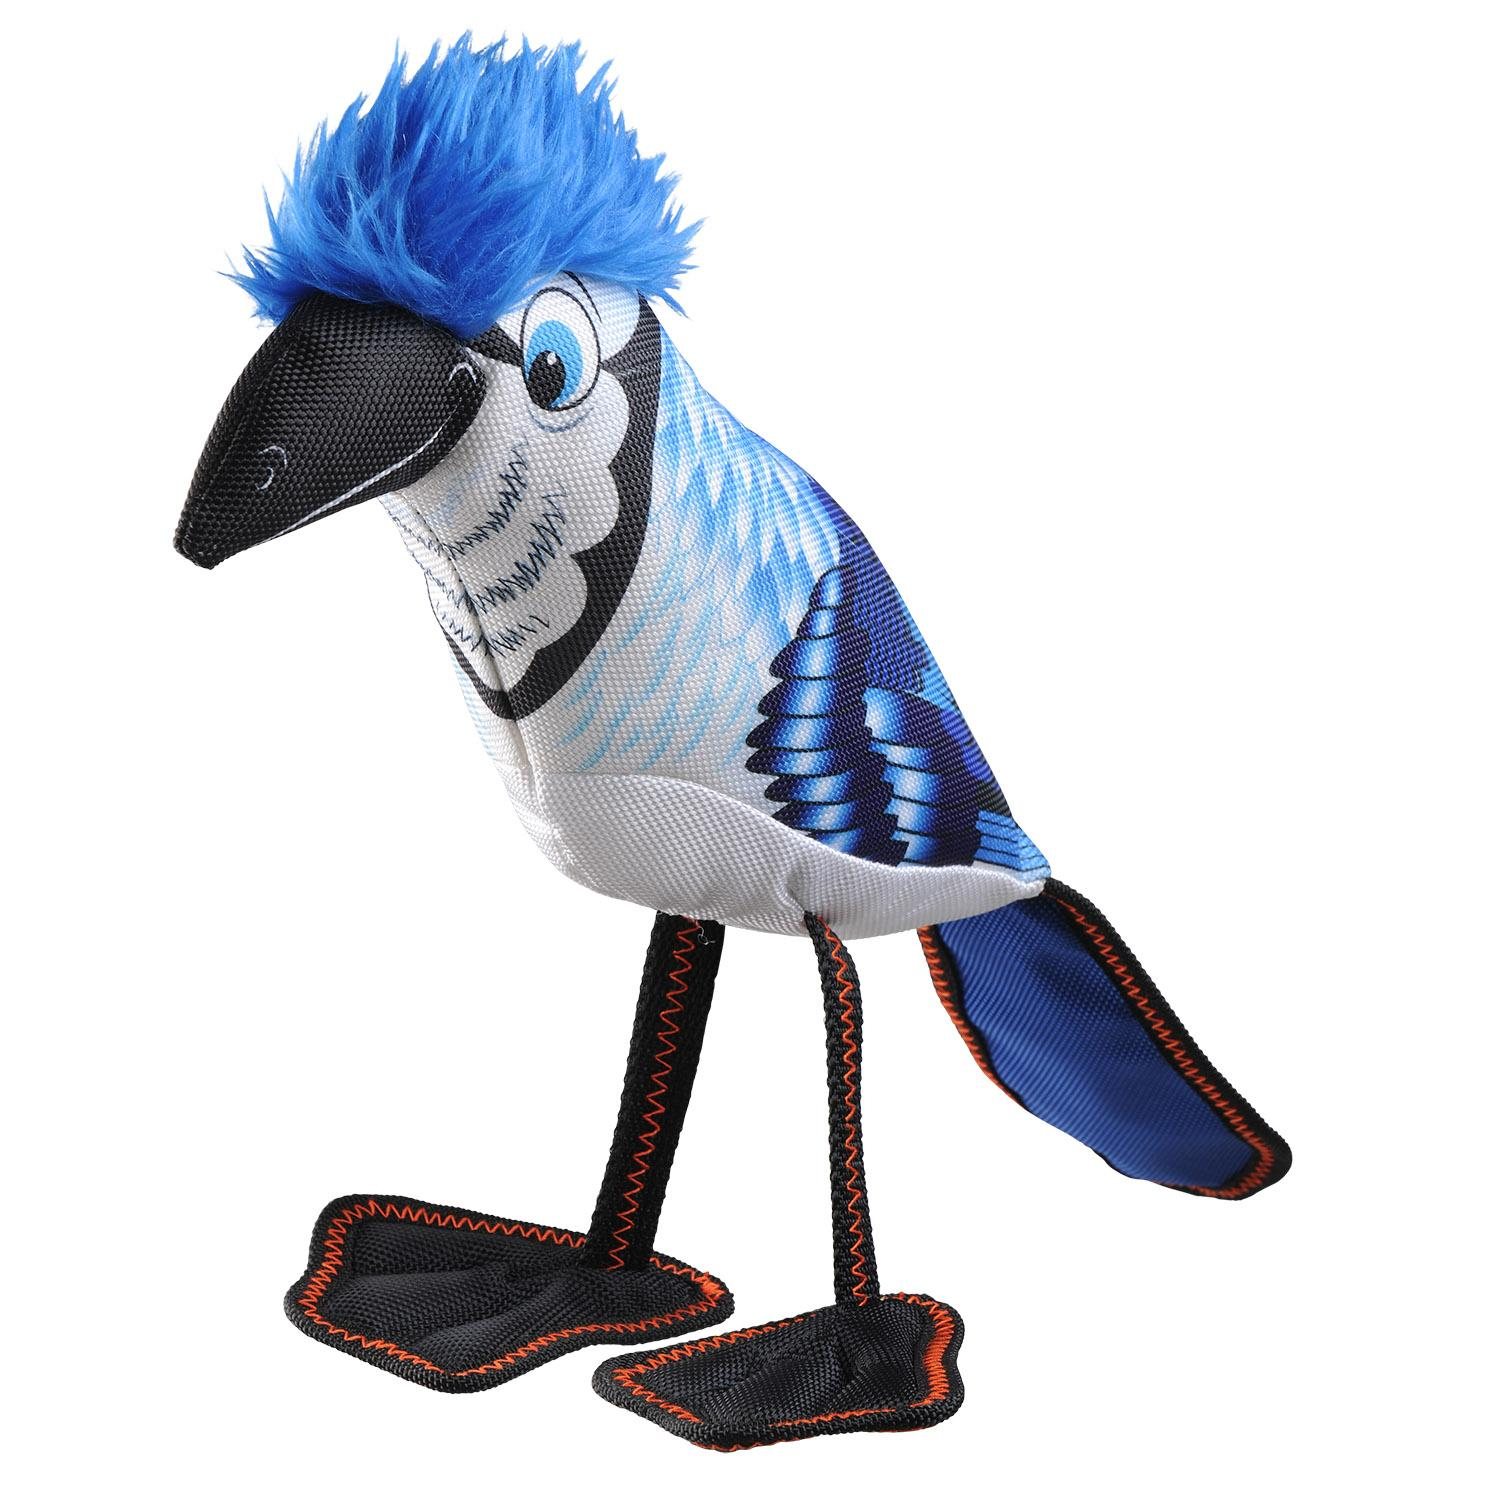 Happy Tails Loonies Durable Dog Toy - Blue Jay